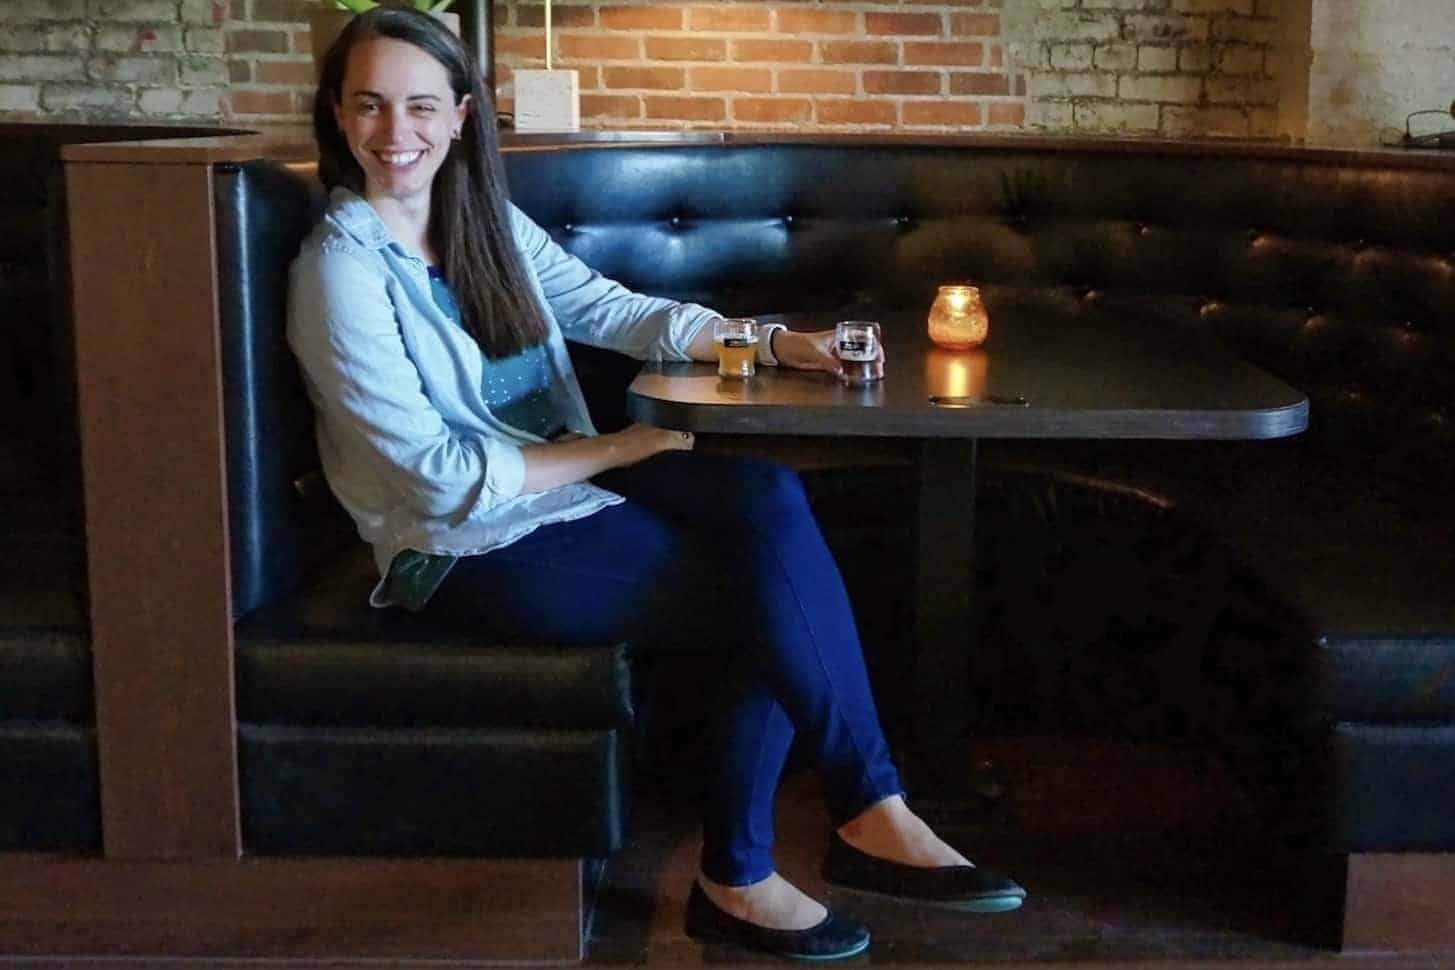 Valerie wearing Tieks in Ohio